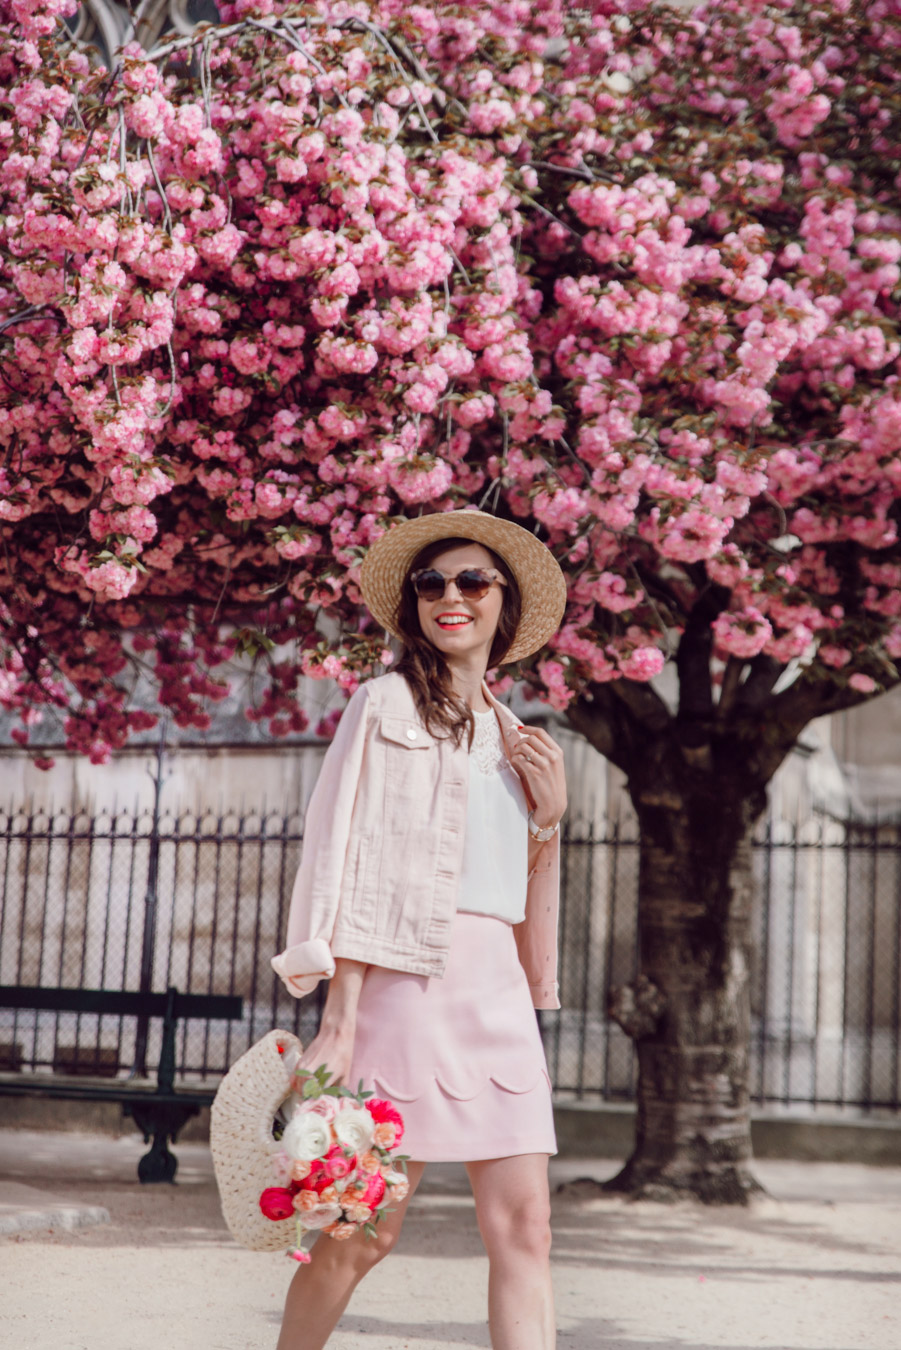 Blog-Mode-And-The-City-Looks-Notre-Dame-arbre-en-fleurs-7